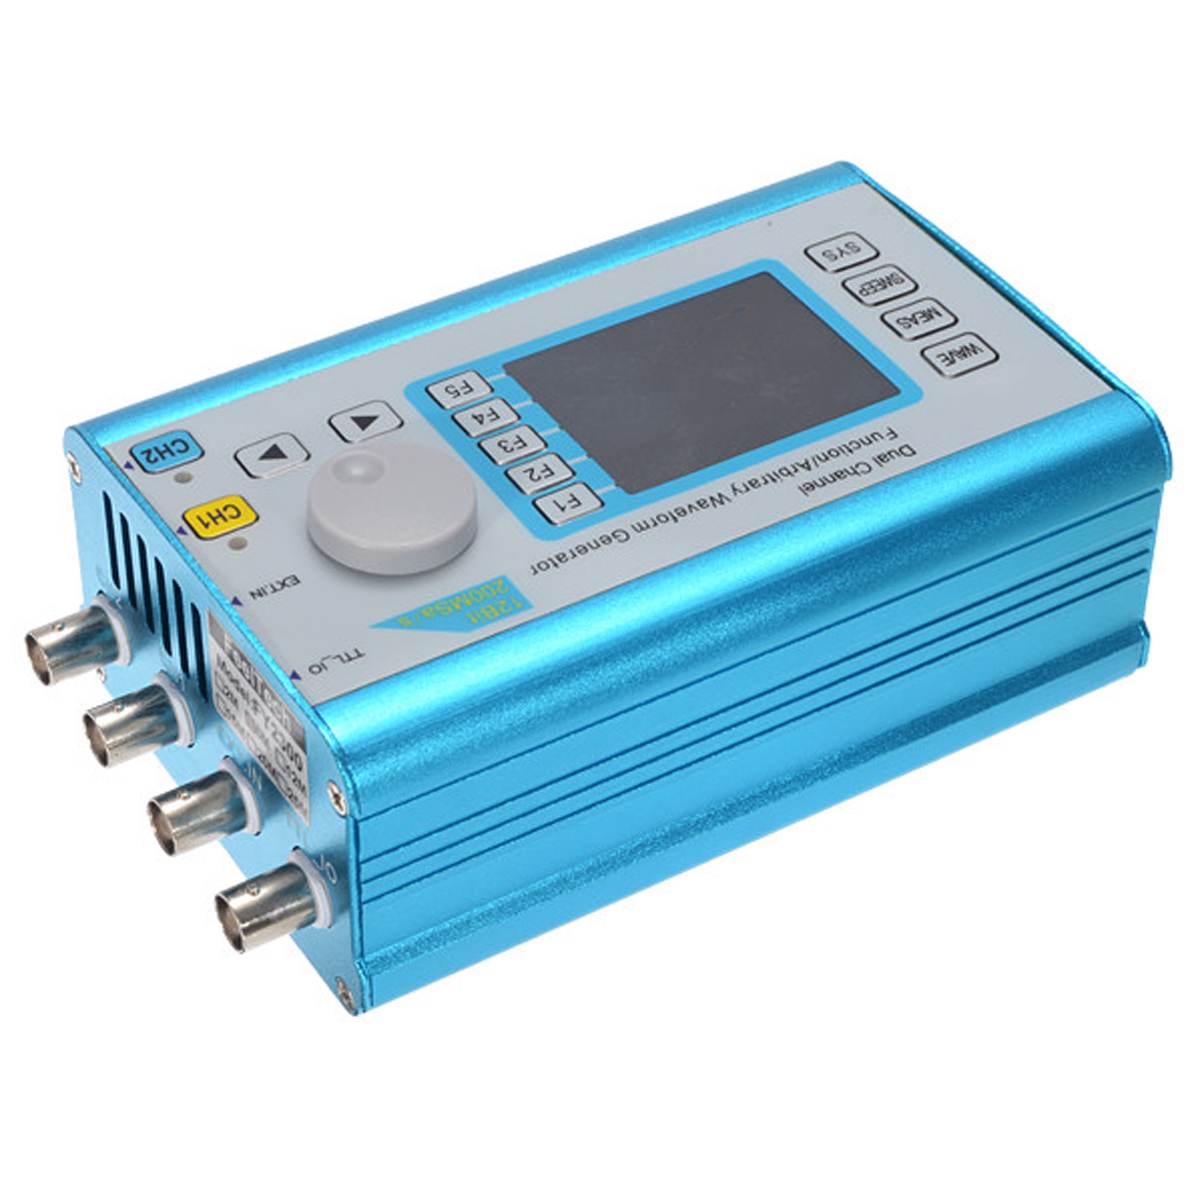 FY2300 6MHz Arbitrary Waveform Dual Channel High Frequency Signal Generator 200MSa/s 100MHz Frequency Meter DDS New 2018 hot new rigol dg4102 signal arbitrary waveform generator awg 100mhz 2 channel 7inch lcd display